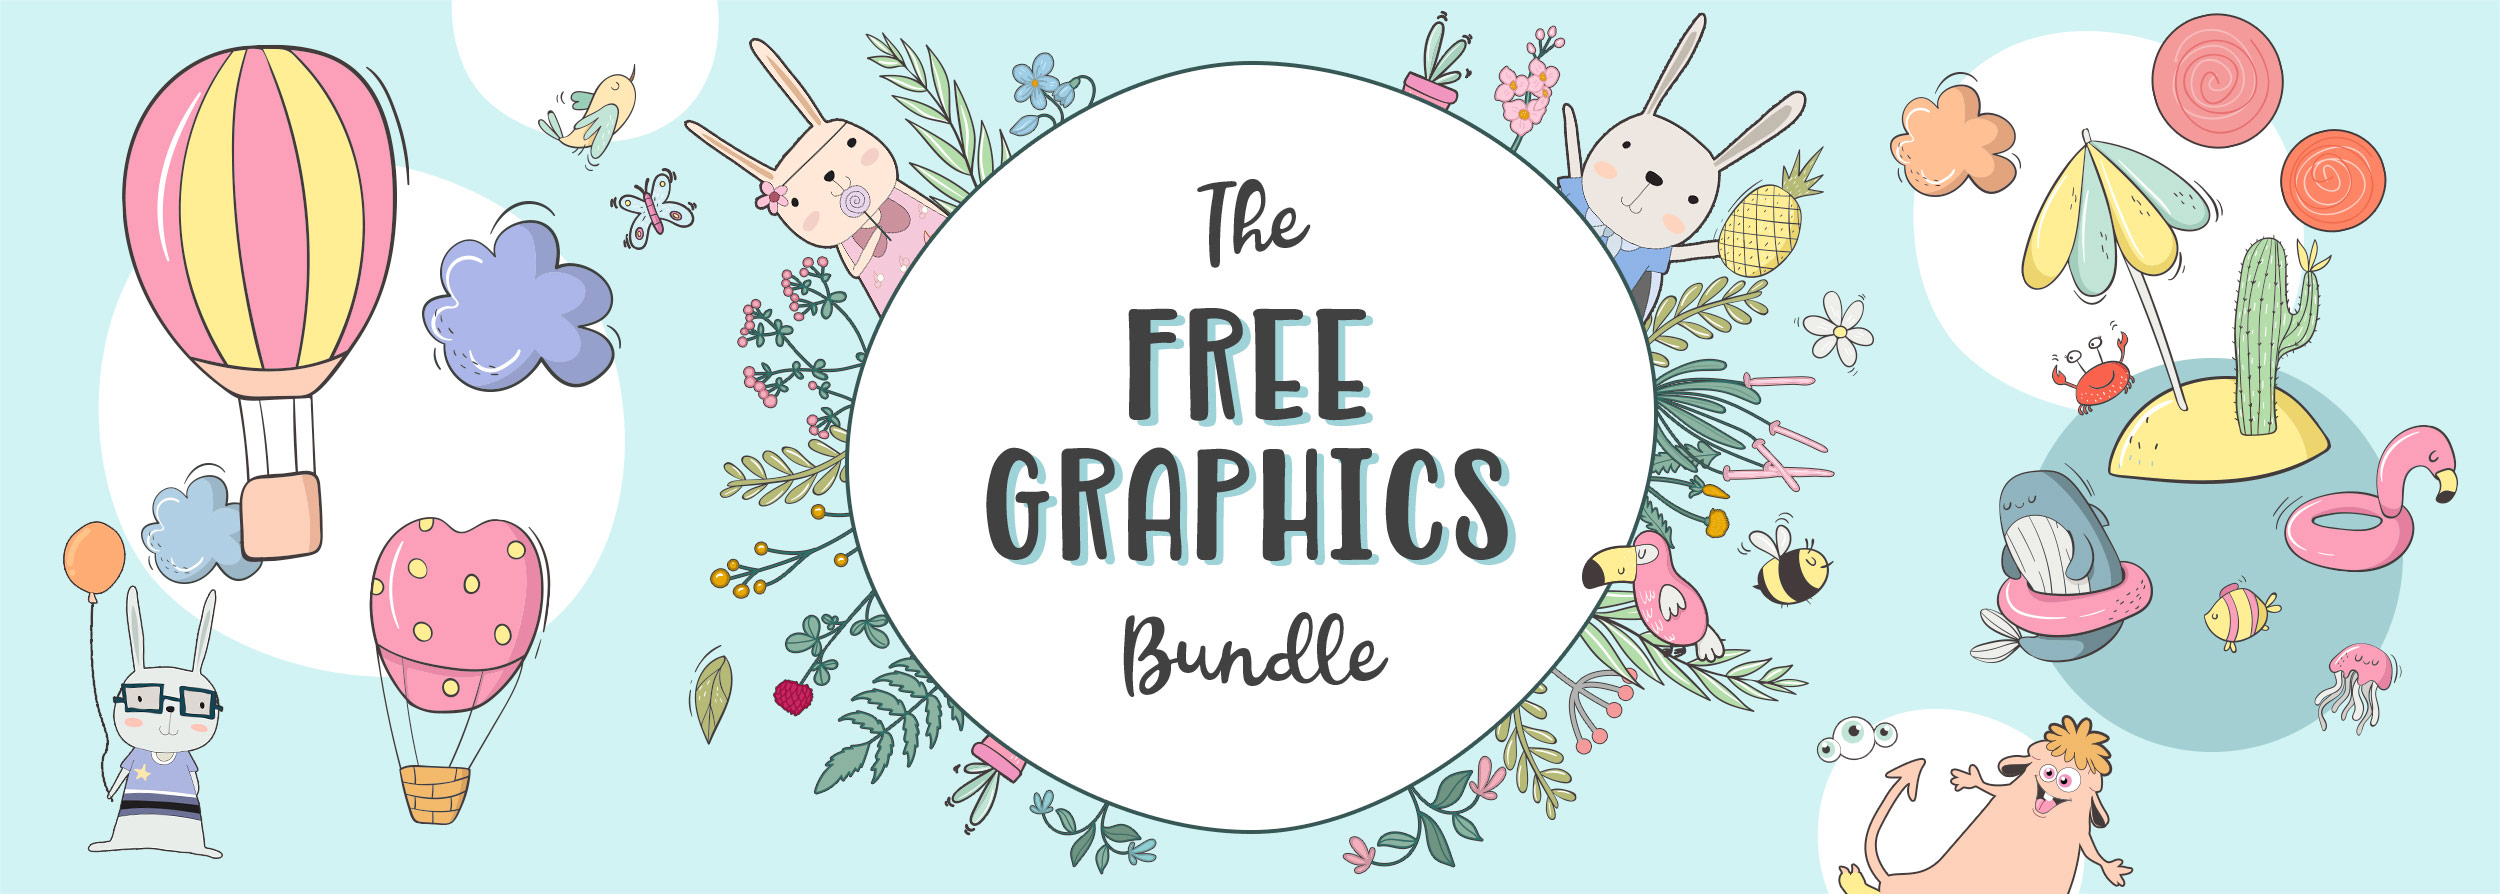 The Free Graphics Bundle  Cover